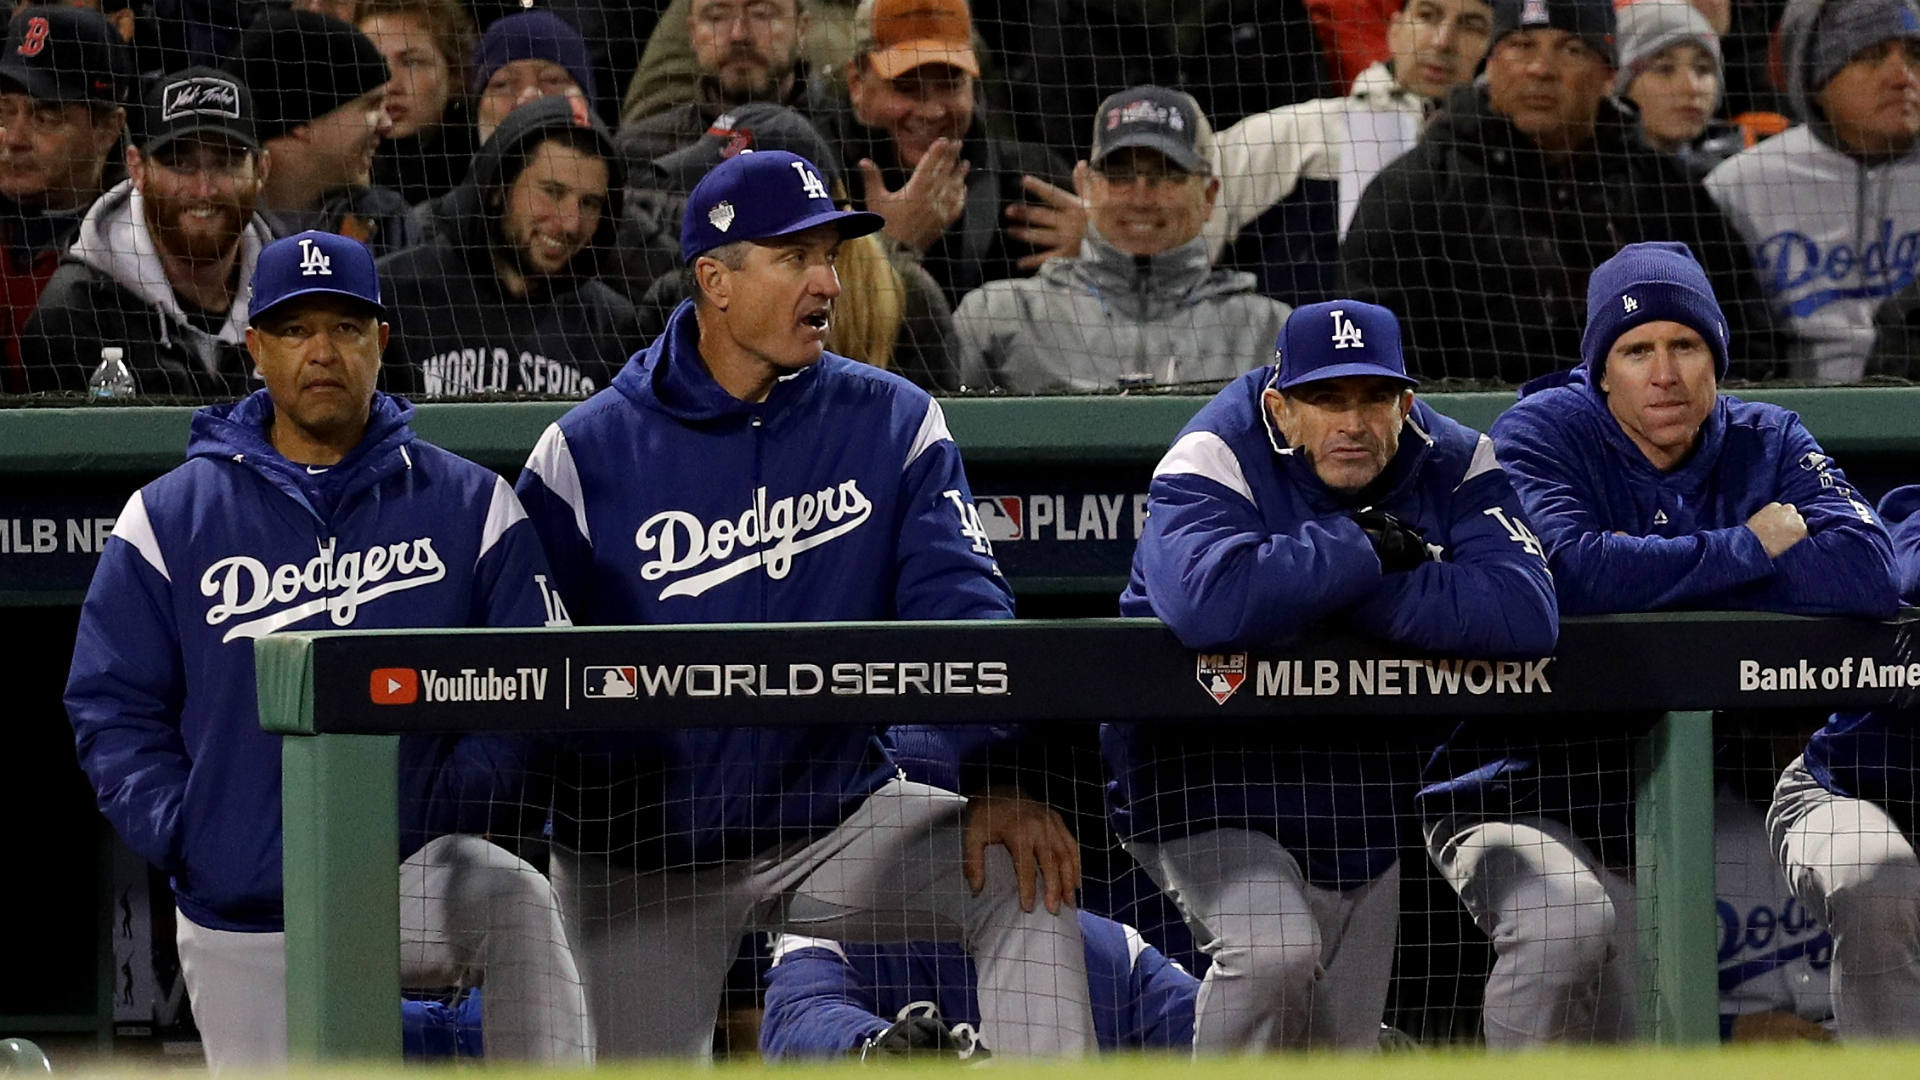 Los Angeles Dodgers look to ride wave to even series